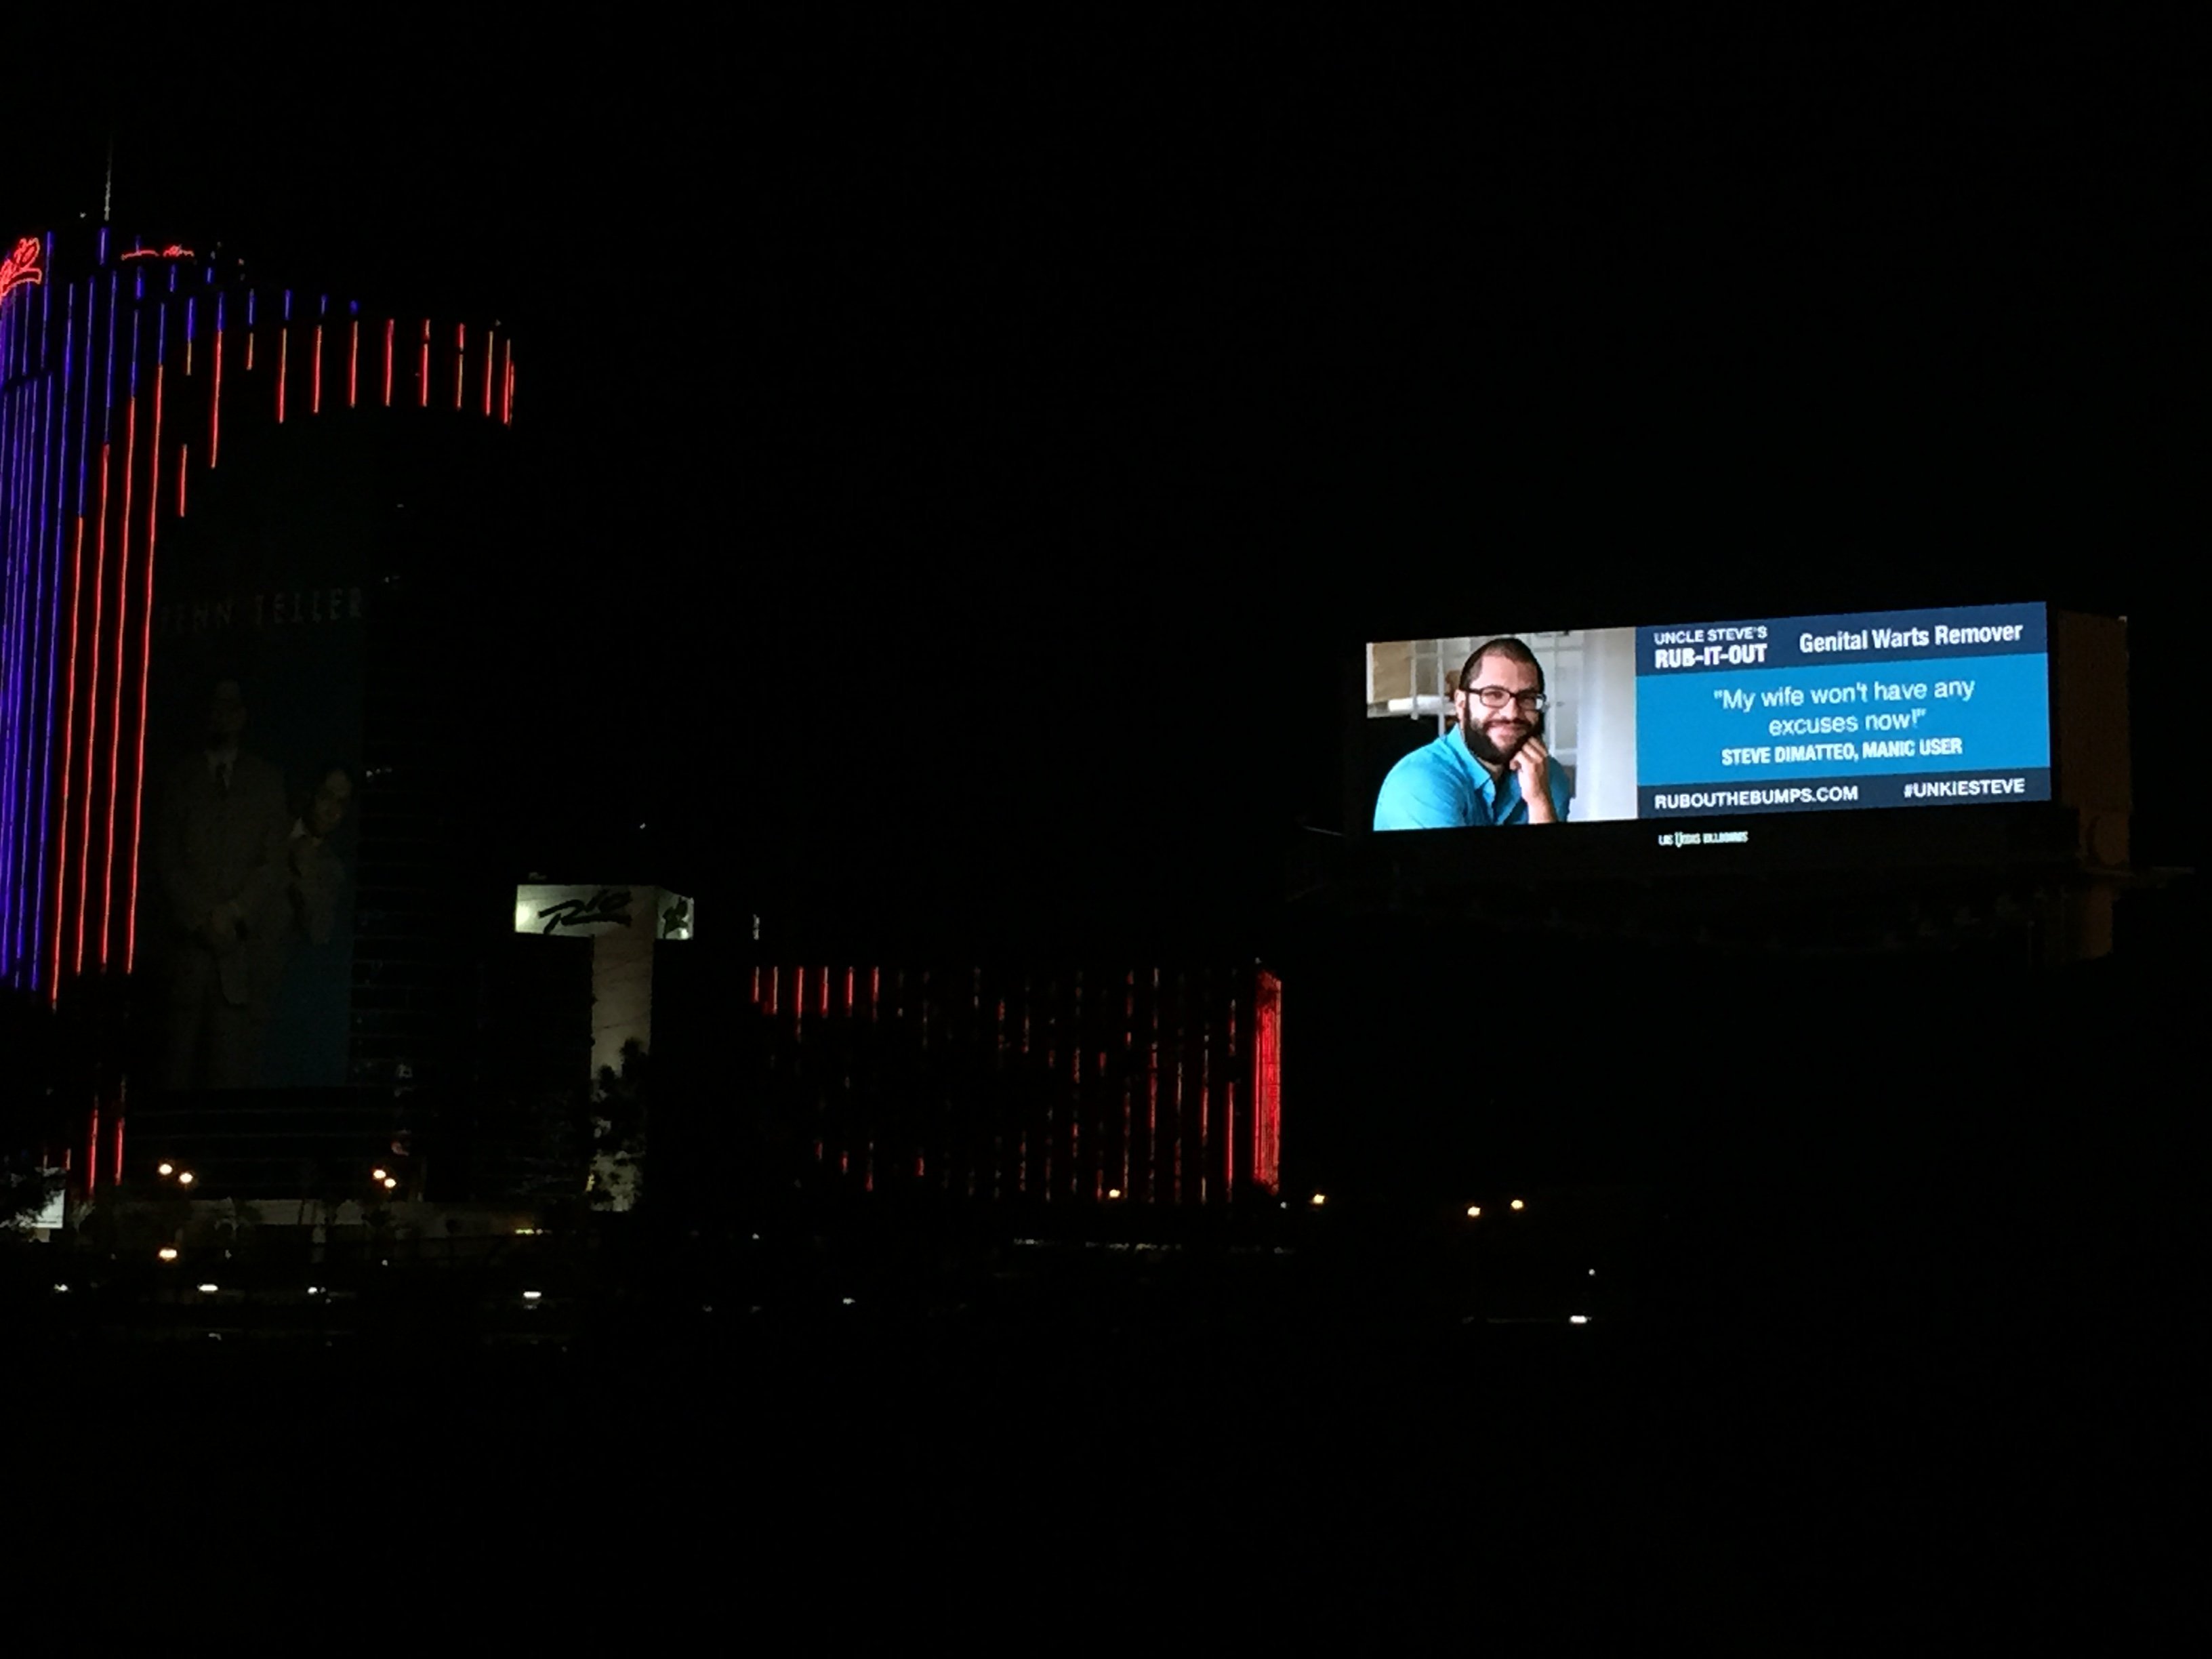 A Las Vegas billboard was rented out for a bachelor party that featured the groom promoting genital wart remover